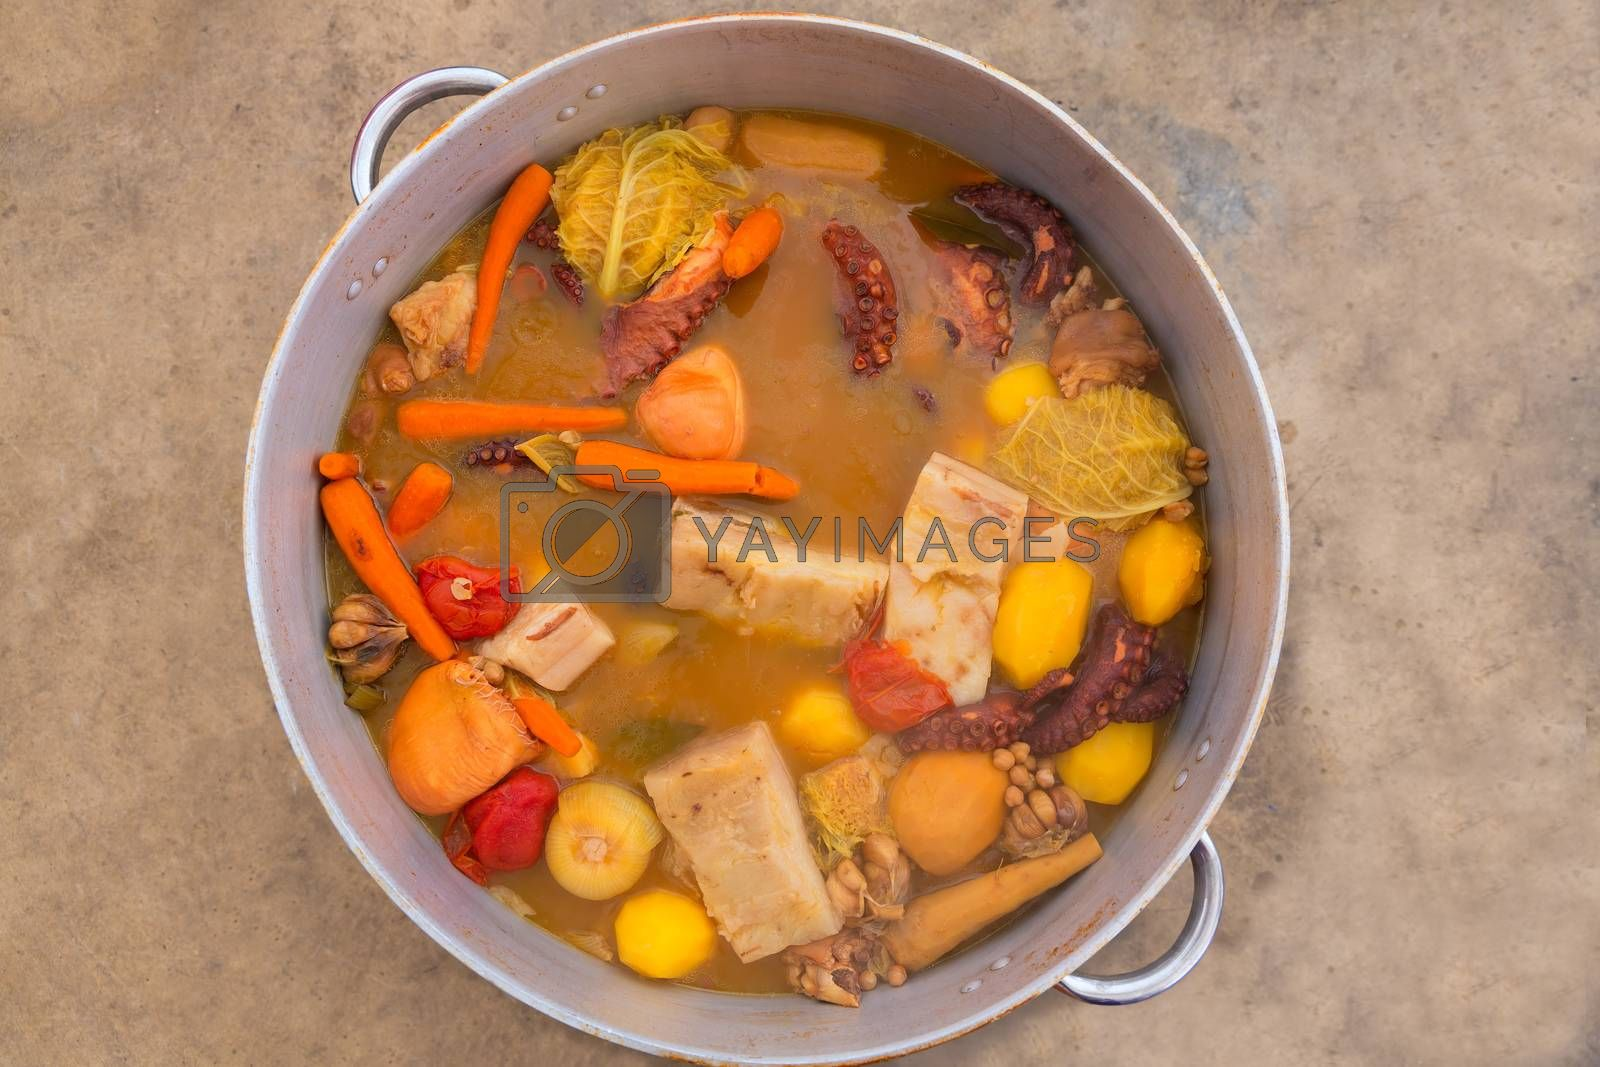 Octopus stew from mediterranean traditional recipe in Alicante spain